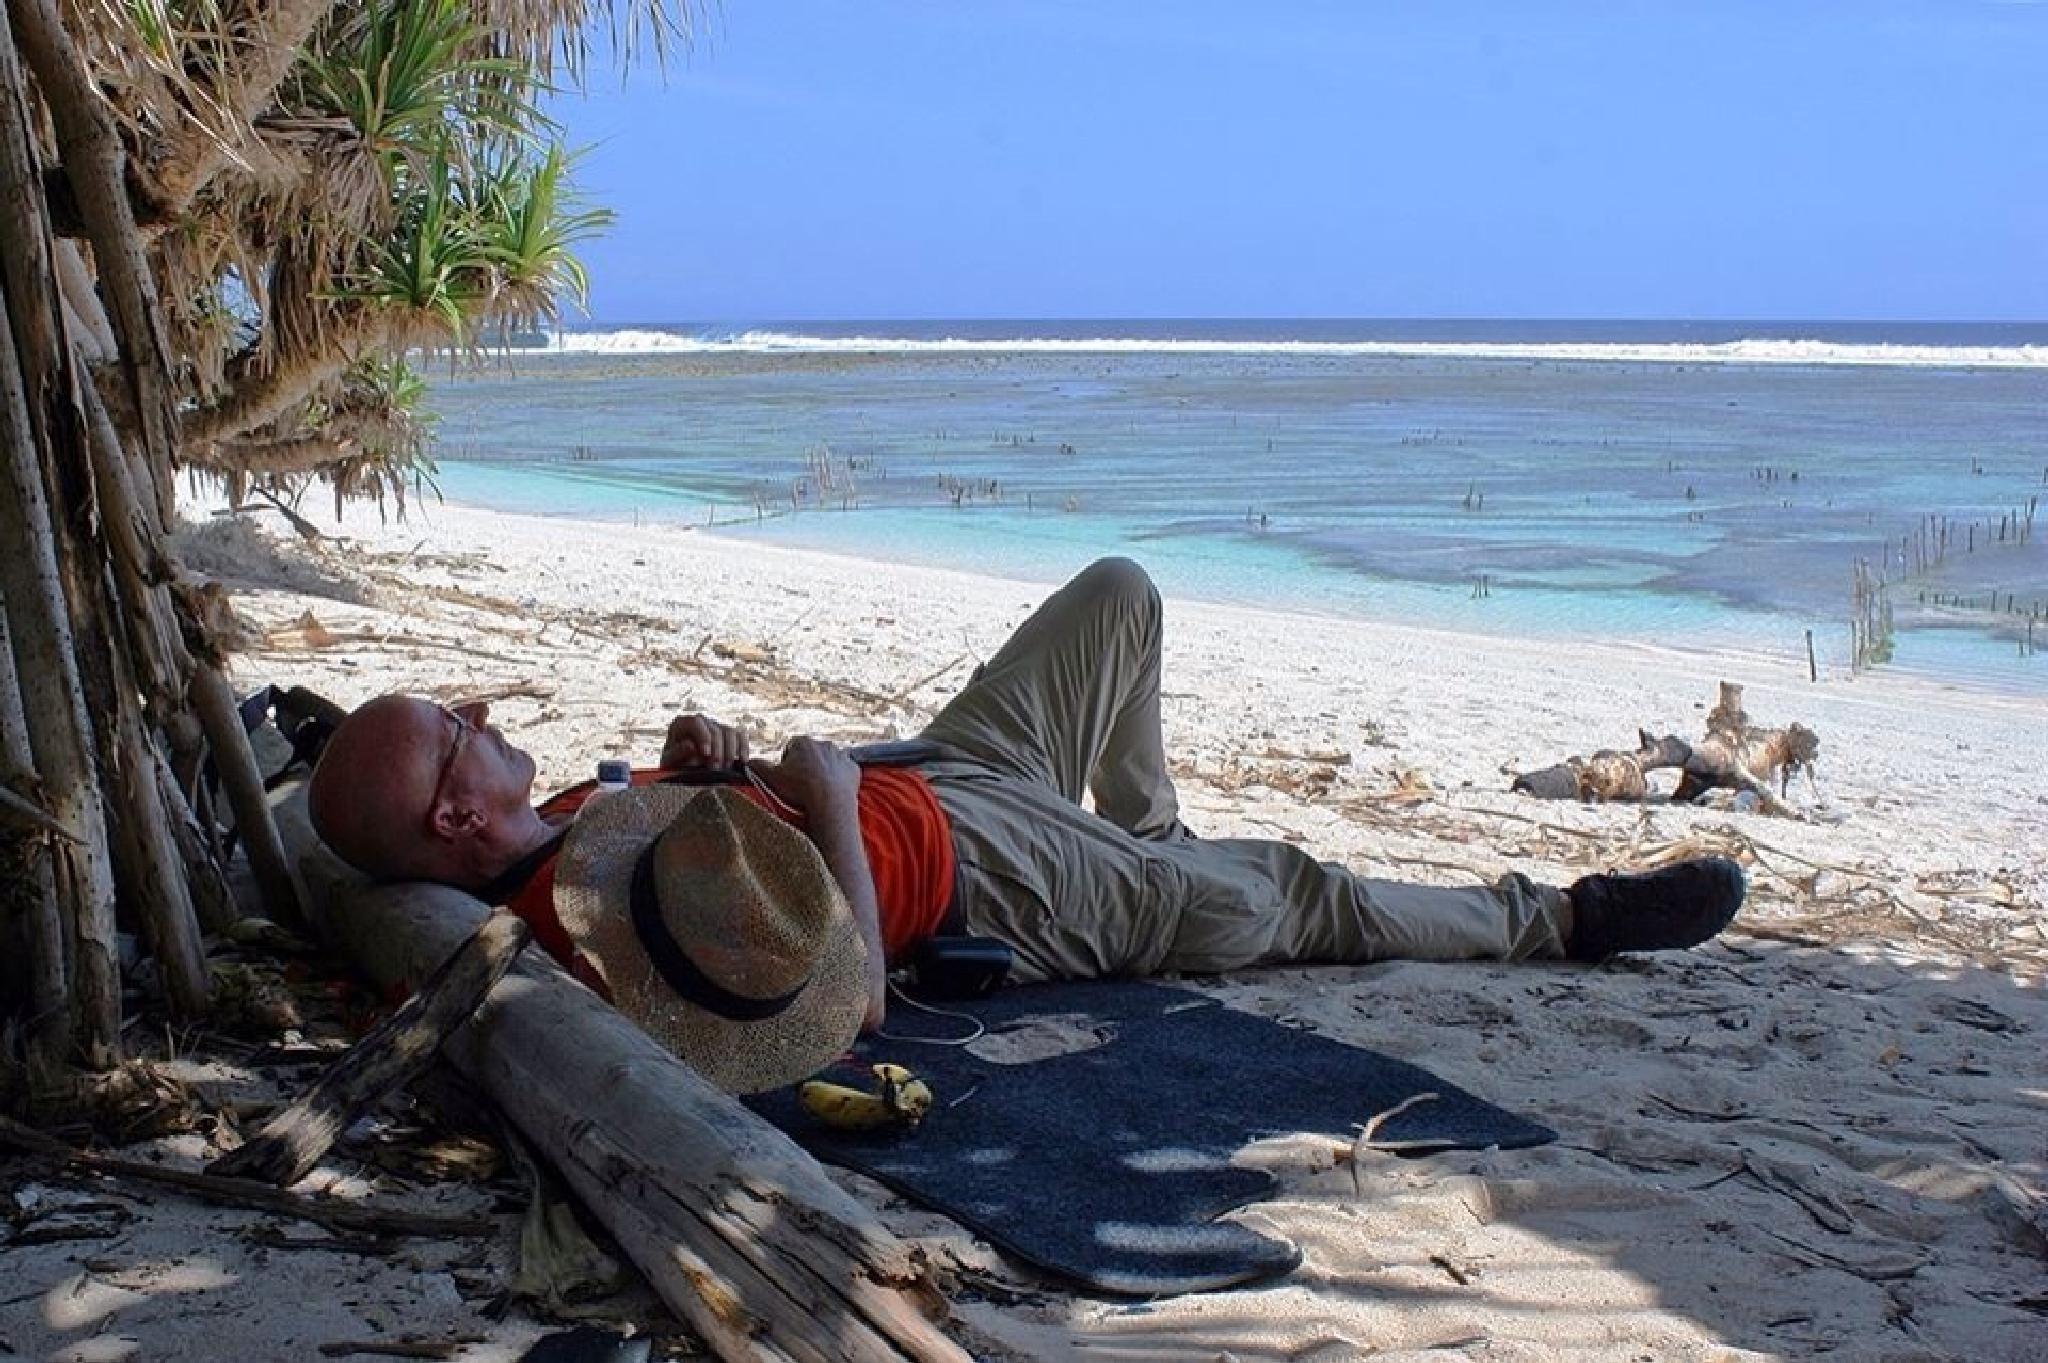 Need some rest, Rote island, Indonesia. by grossiroma